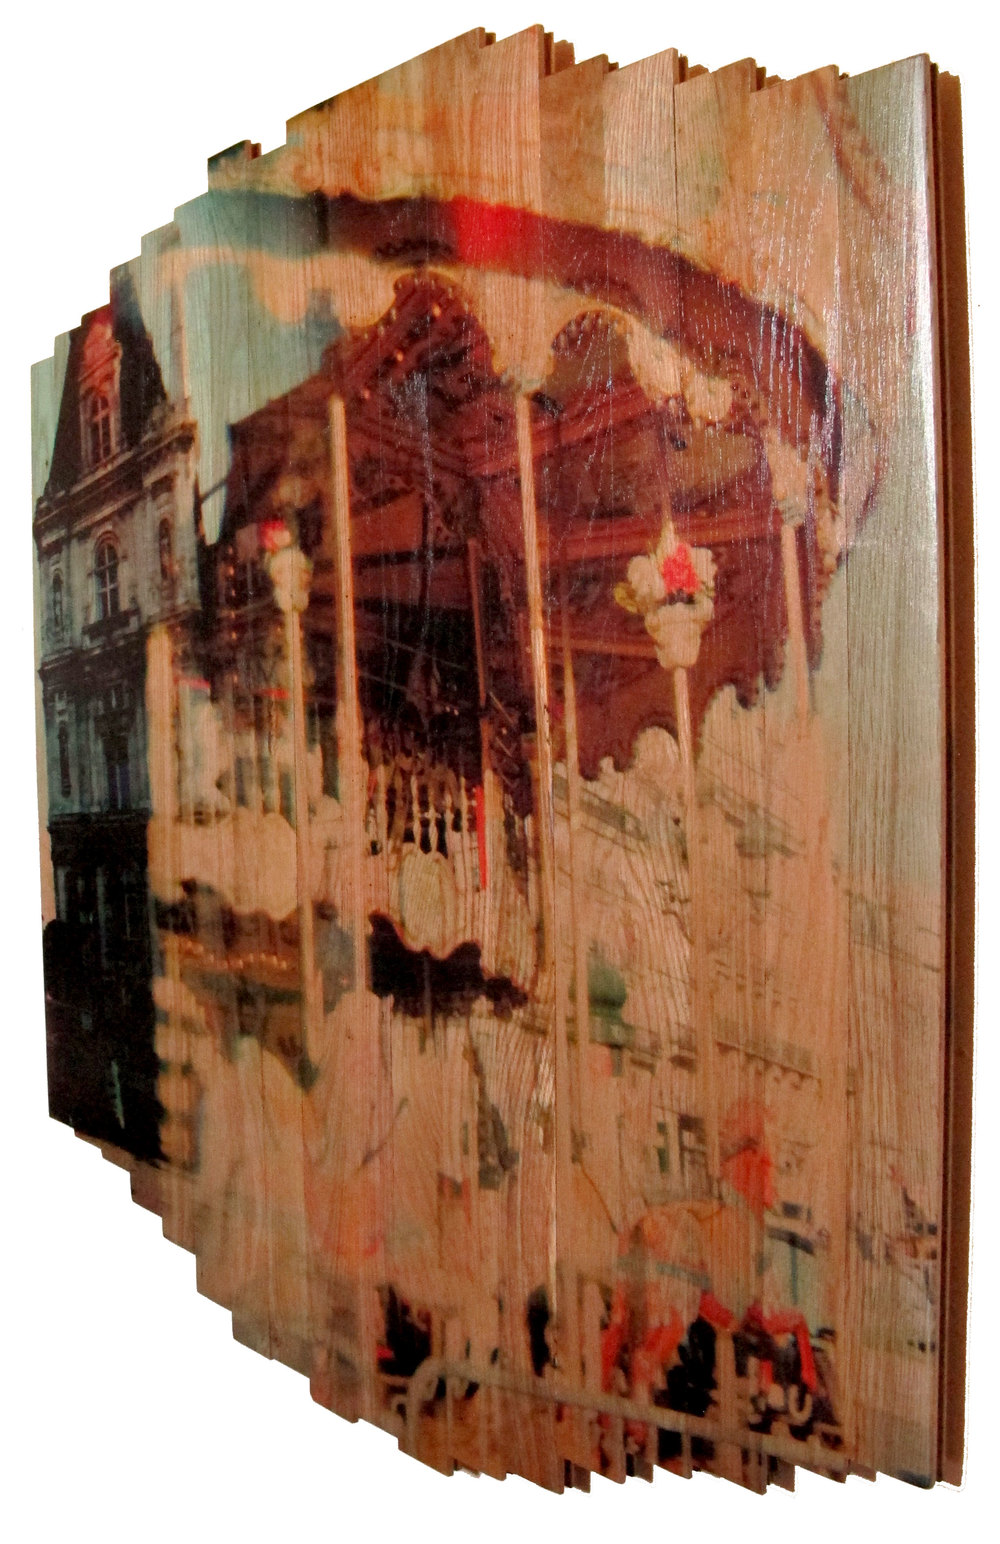 Paris Carousel II , 2016 c print on reclaimed wood floor 46 x 41 x 1.5 in / 117x105x4 cm  Unique